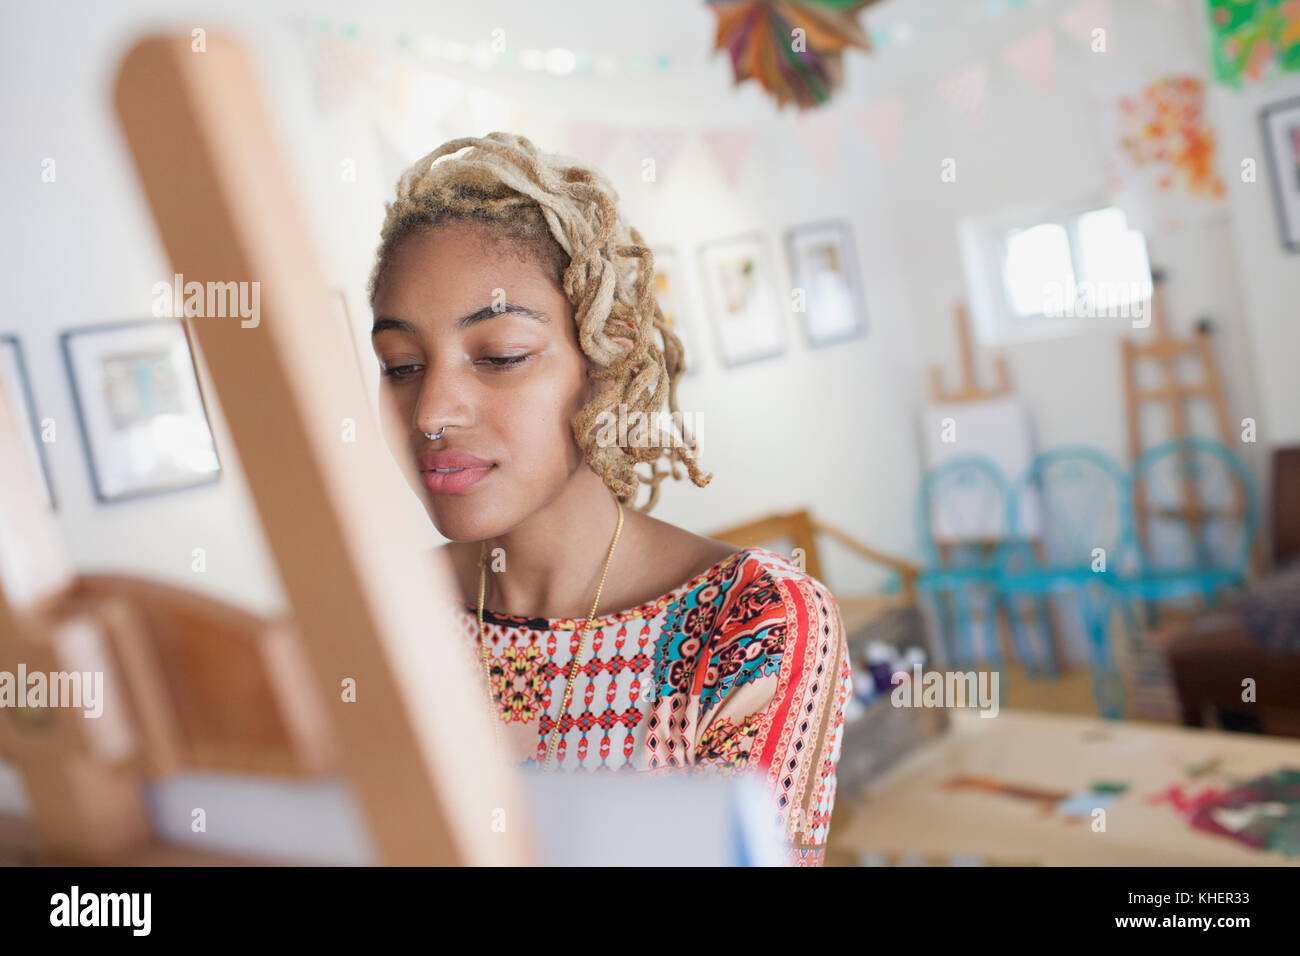 A young woman in front of an easel - Stock Image